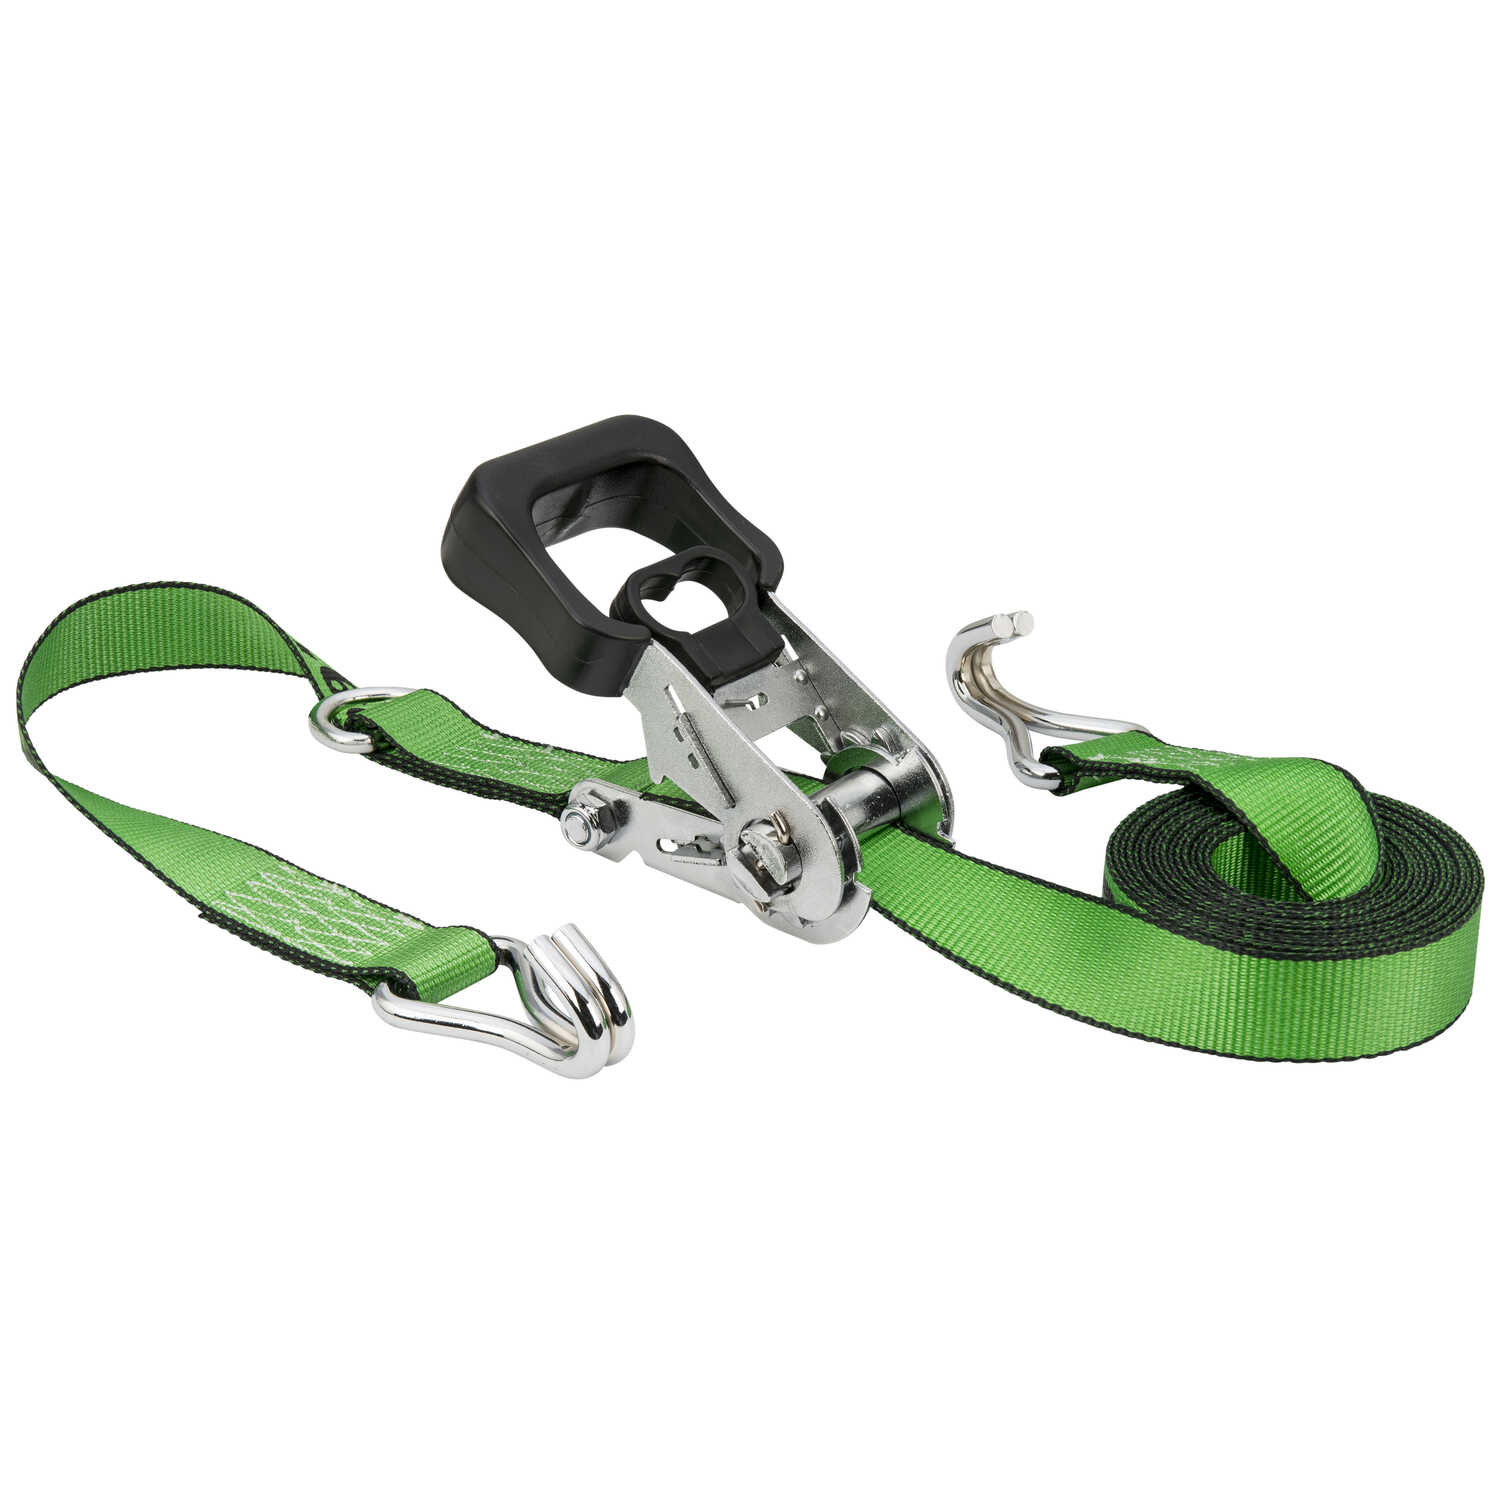 Keeper  1.5 in. W x 16 ft. L Green  Tie Down Strap  1666 lb. 1 pk